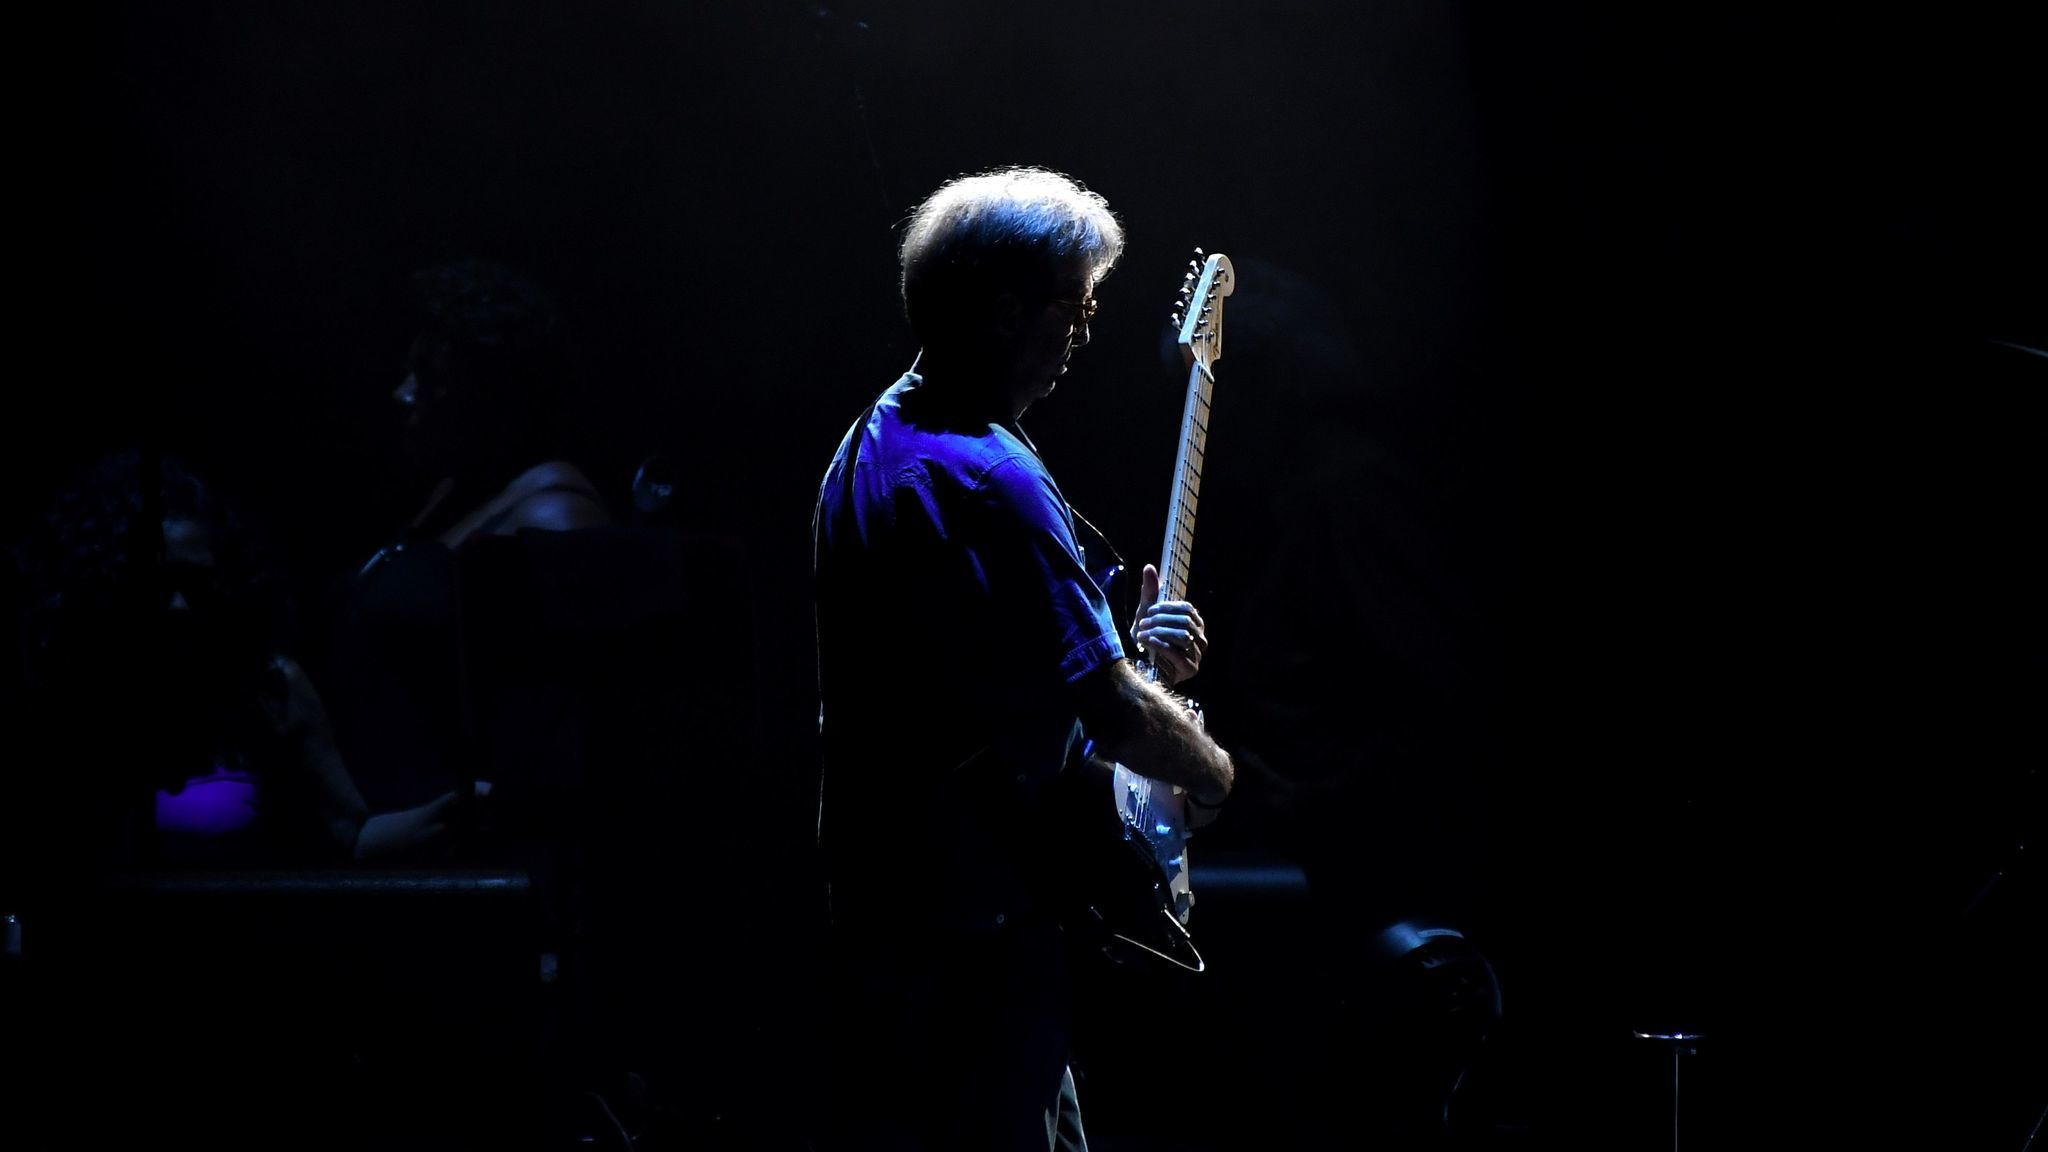 Eric Clapton, seen performing at the Forum in September 2017, opened up about his health in a new BBC interview. (Wally Skalij / Los Angeles Times)